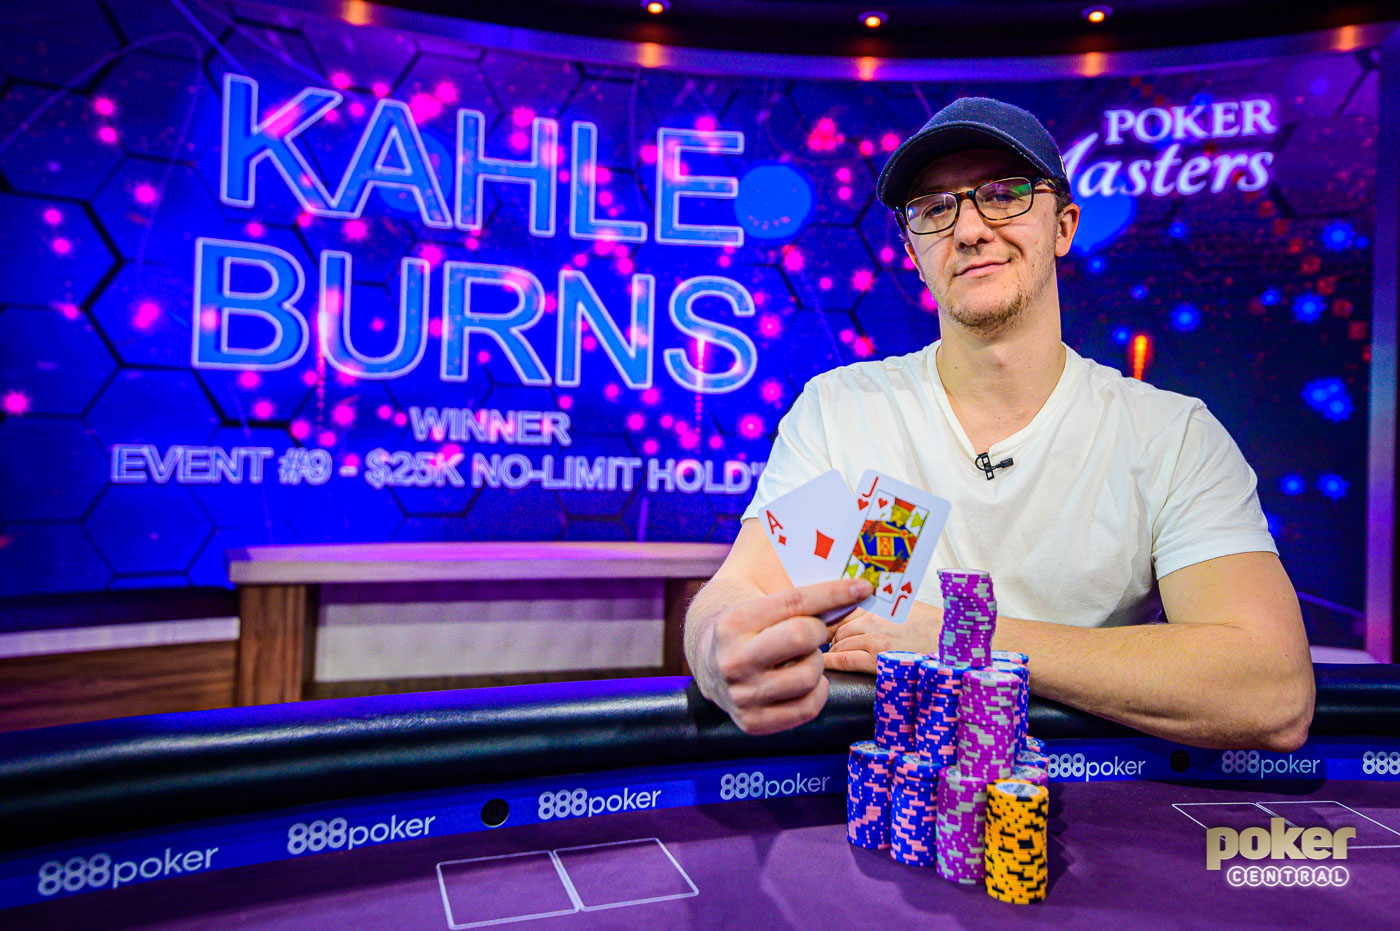 Kahle Burns wins Event #9 of the 2019 Poker Masters.